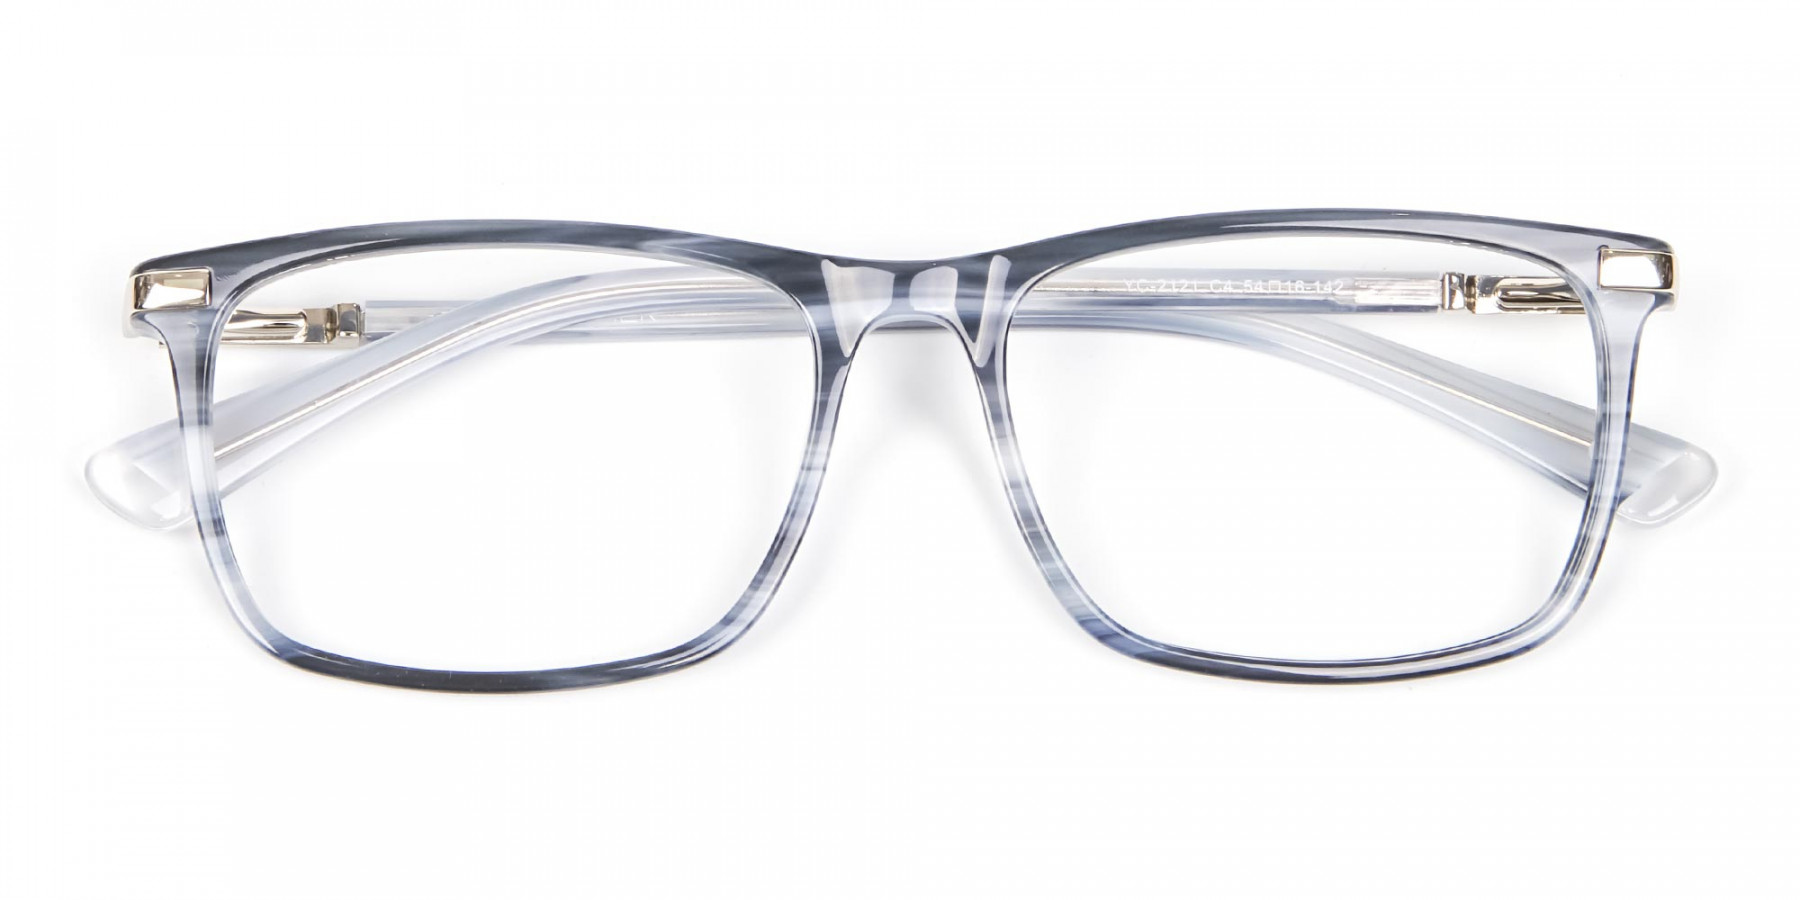 Rectangular Glasses in Grey and Blue - 1